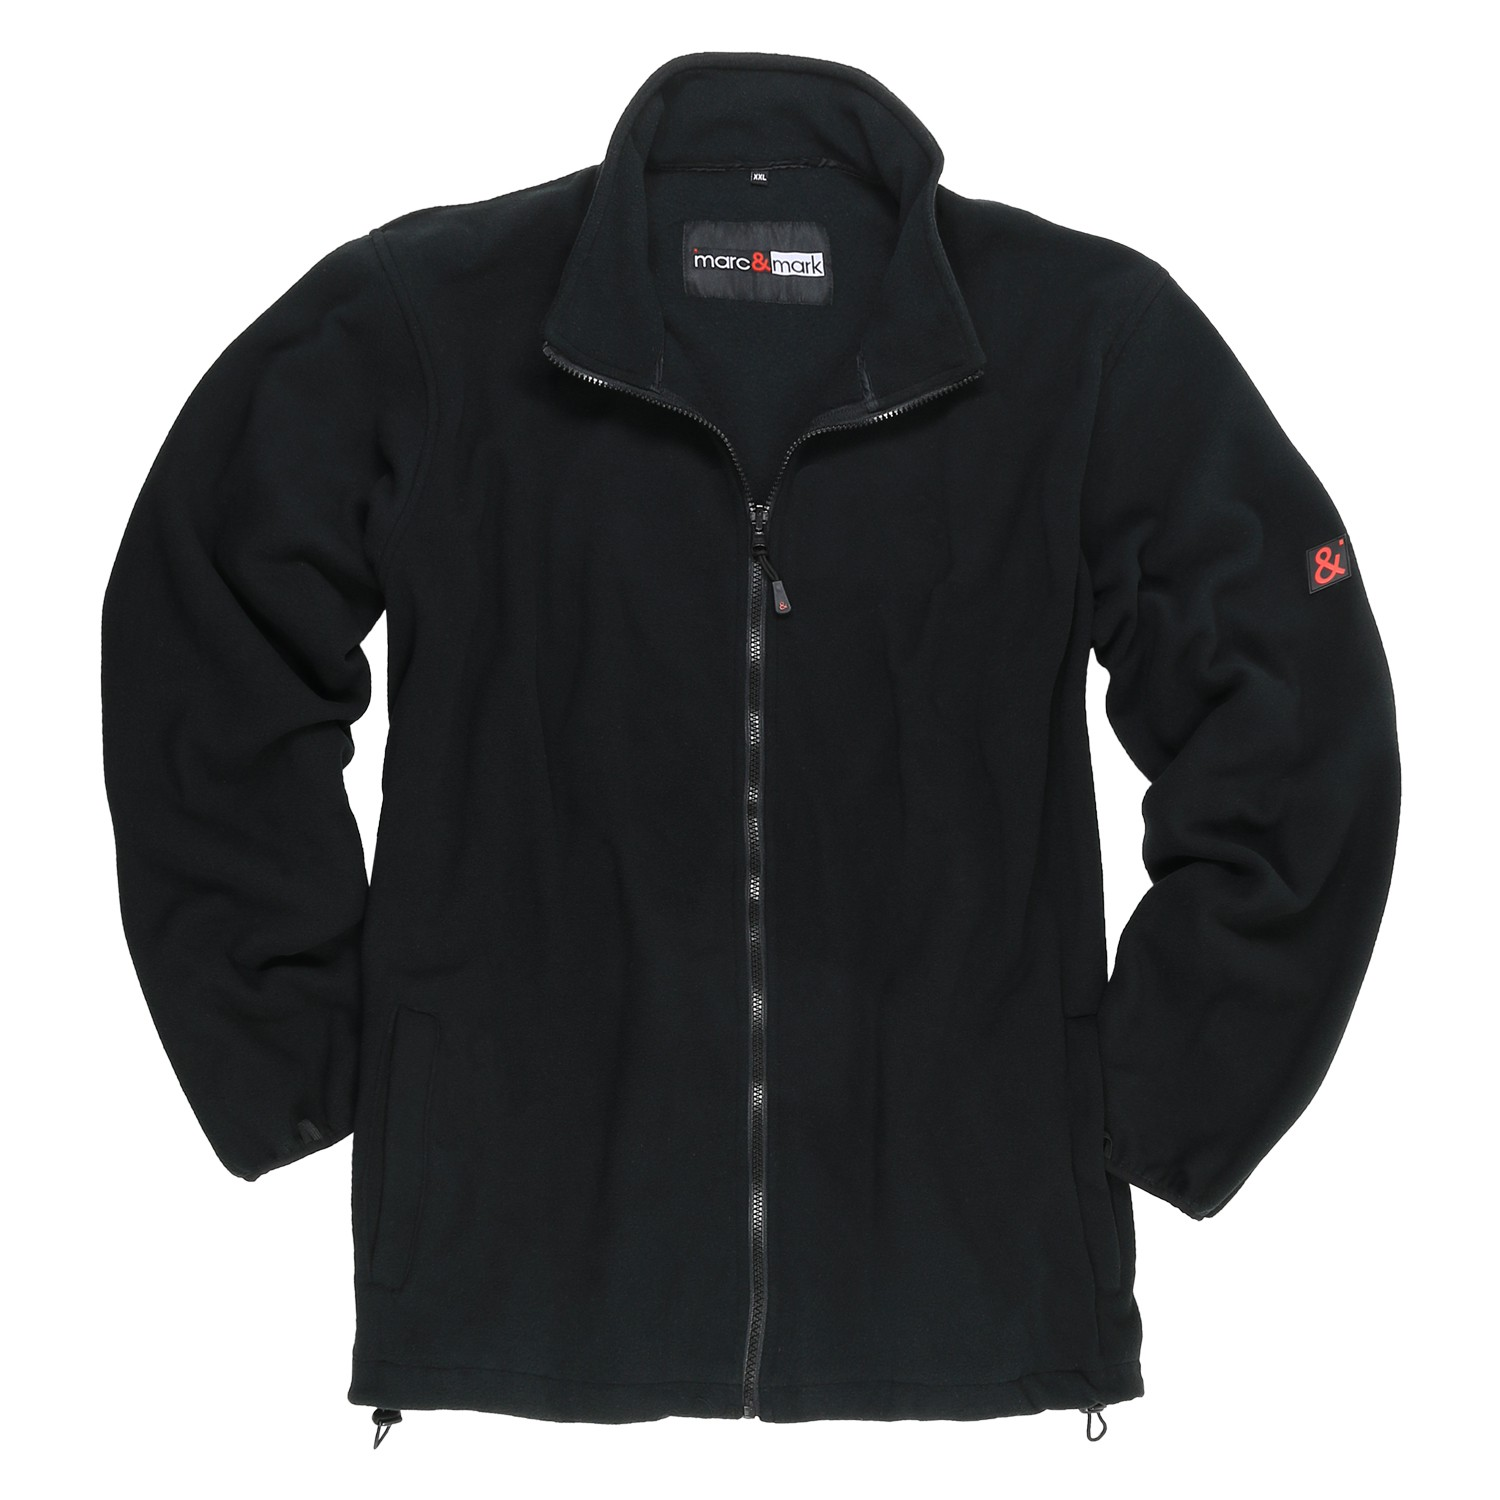 Detail Image to Black 3in1 jacket by marc&mark in oversizes up to 12XL